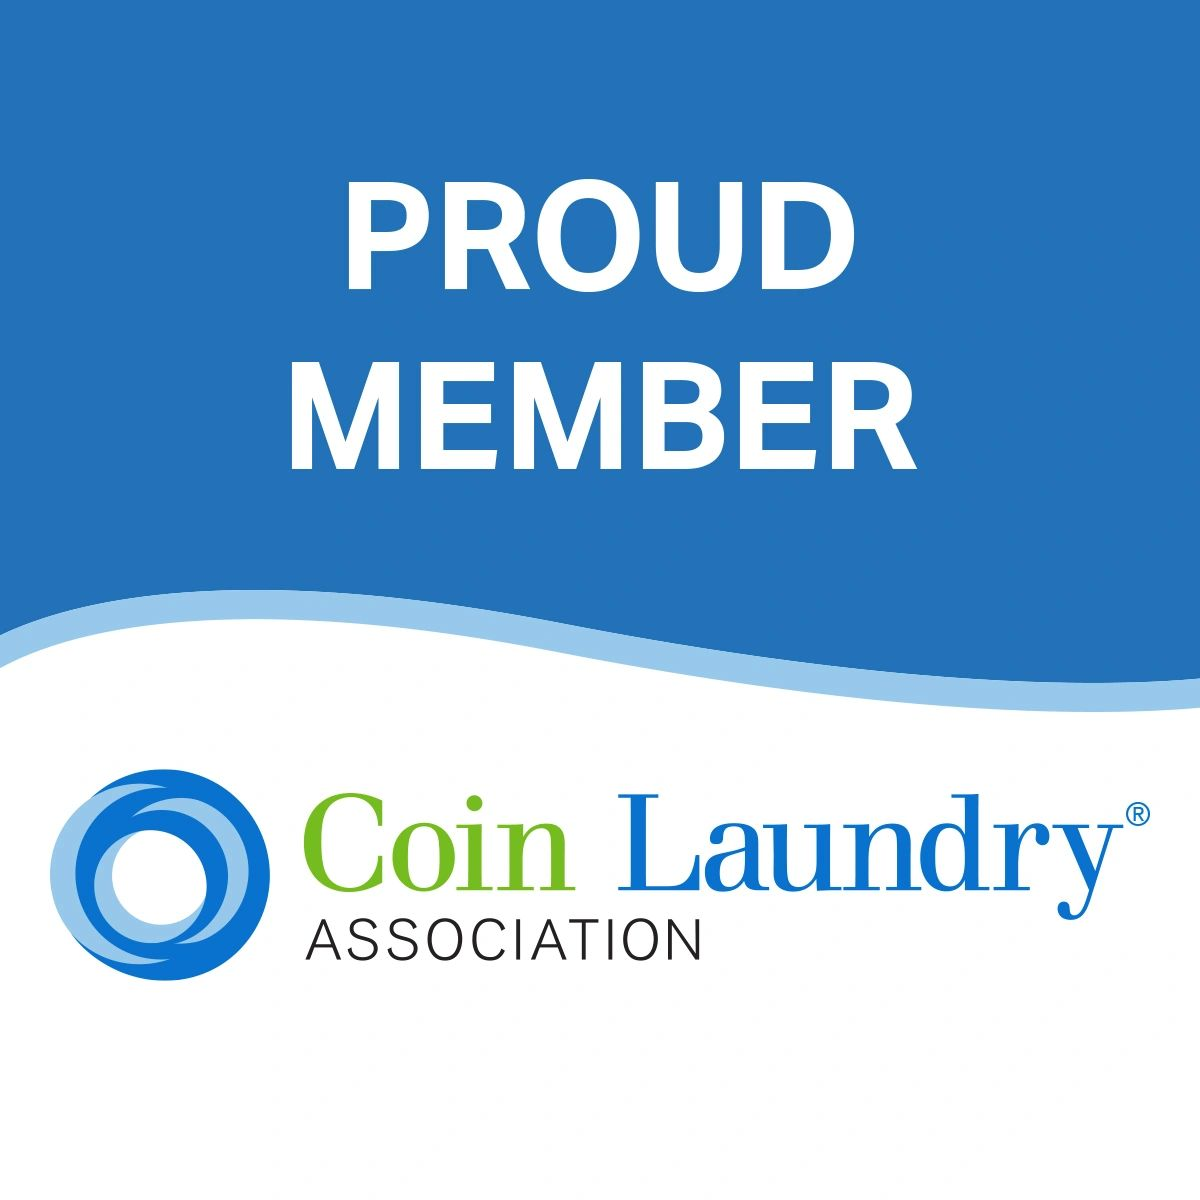 Member of Coin Laundry Association